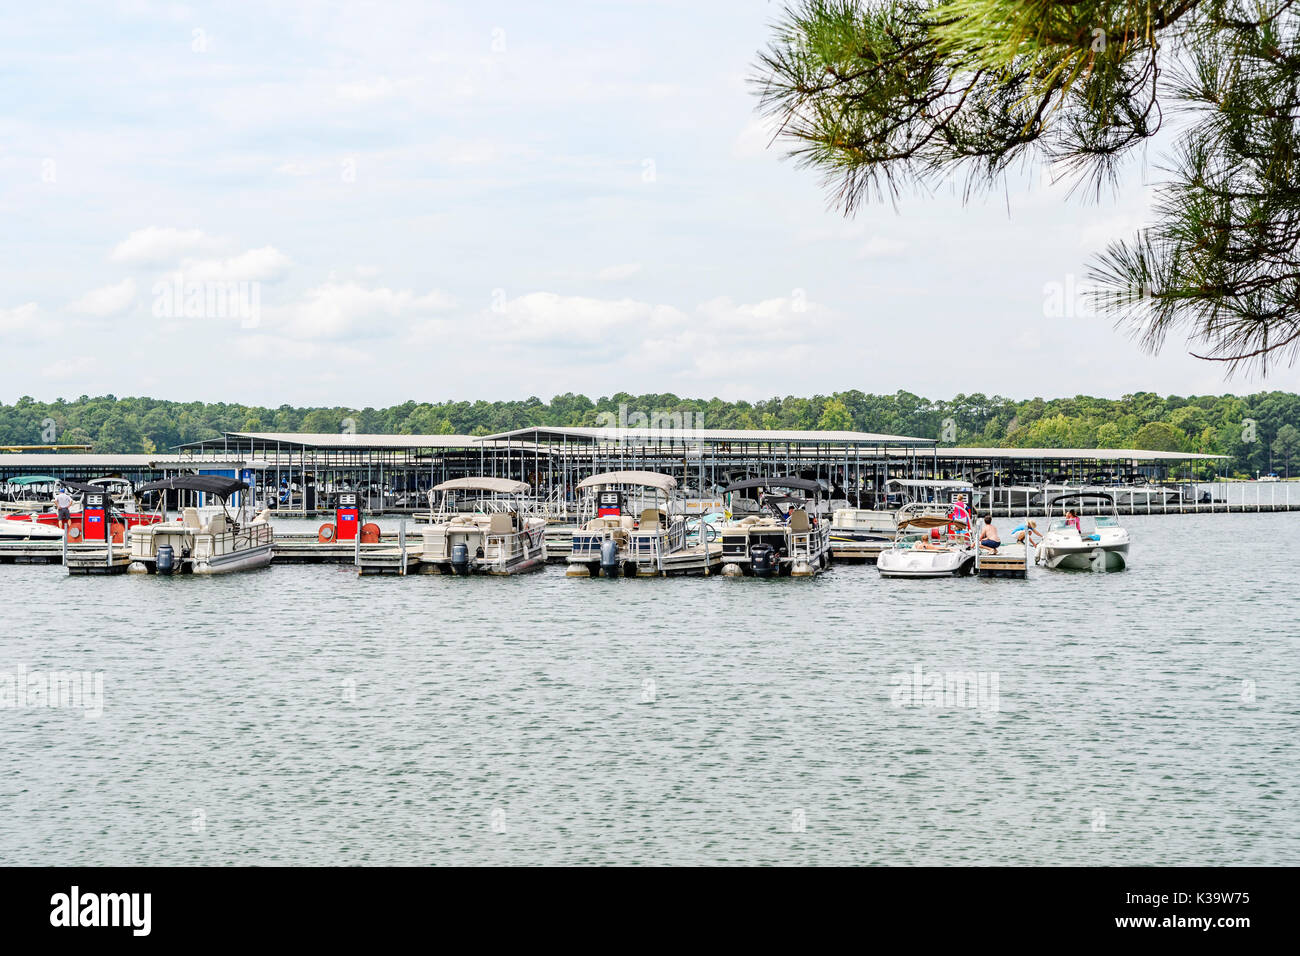 Boats Tied Up On Pontoon Stock Photos Amp Boats Tied Up On